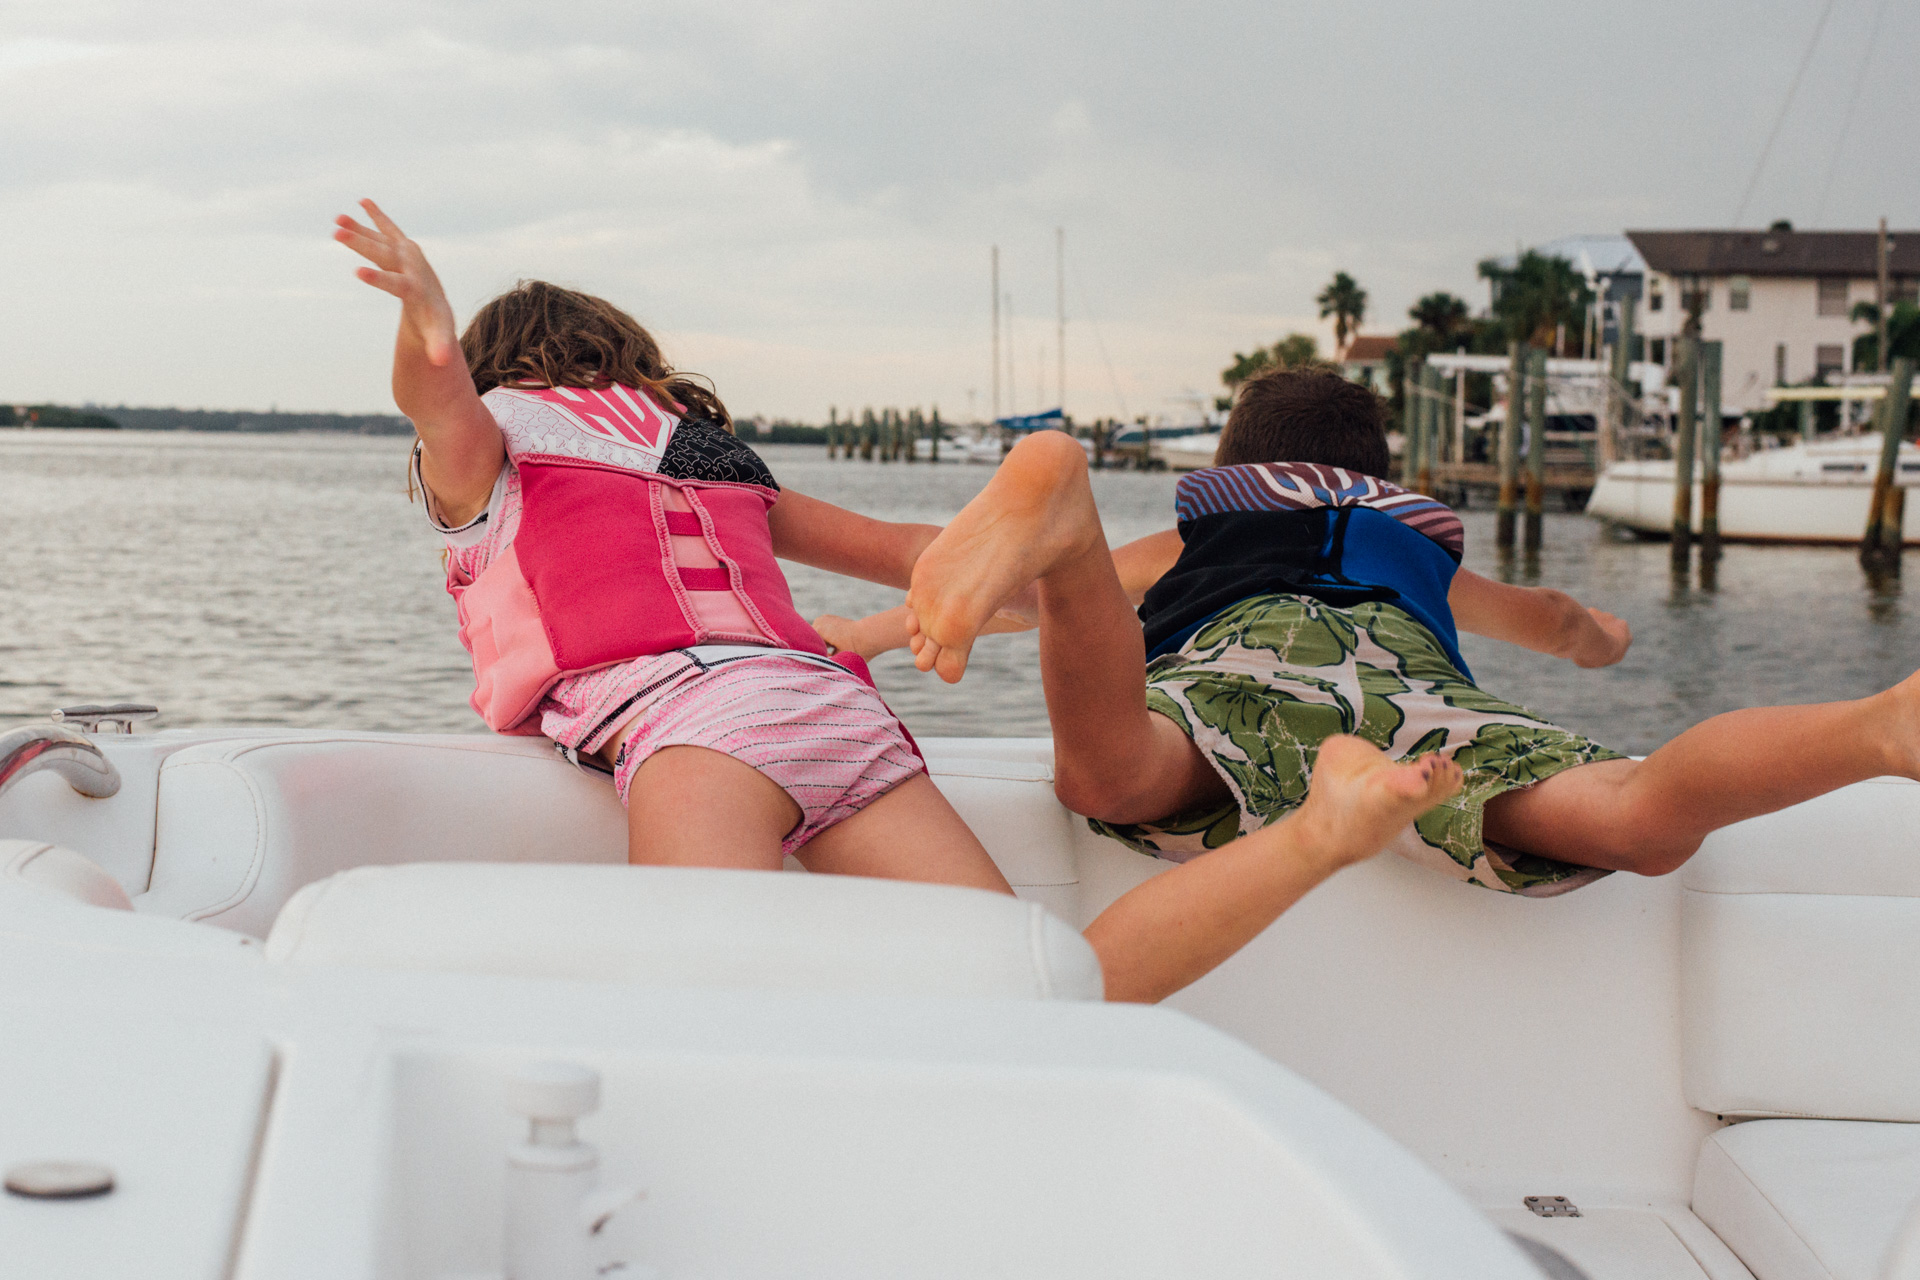 Kids playing on boat - moss image, chris moss, cuba, florida, moab photographer